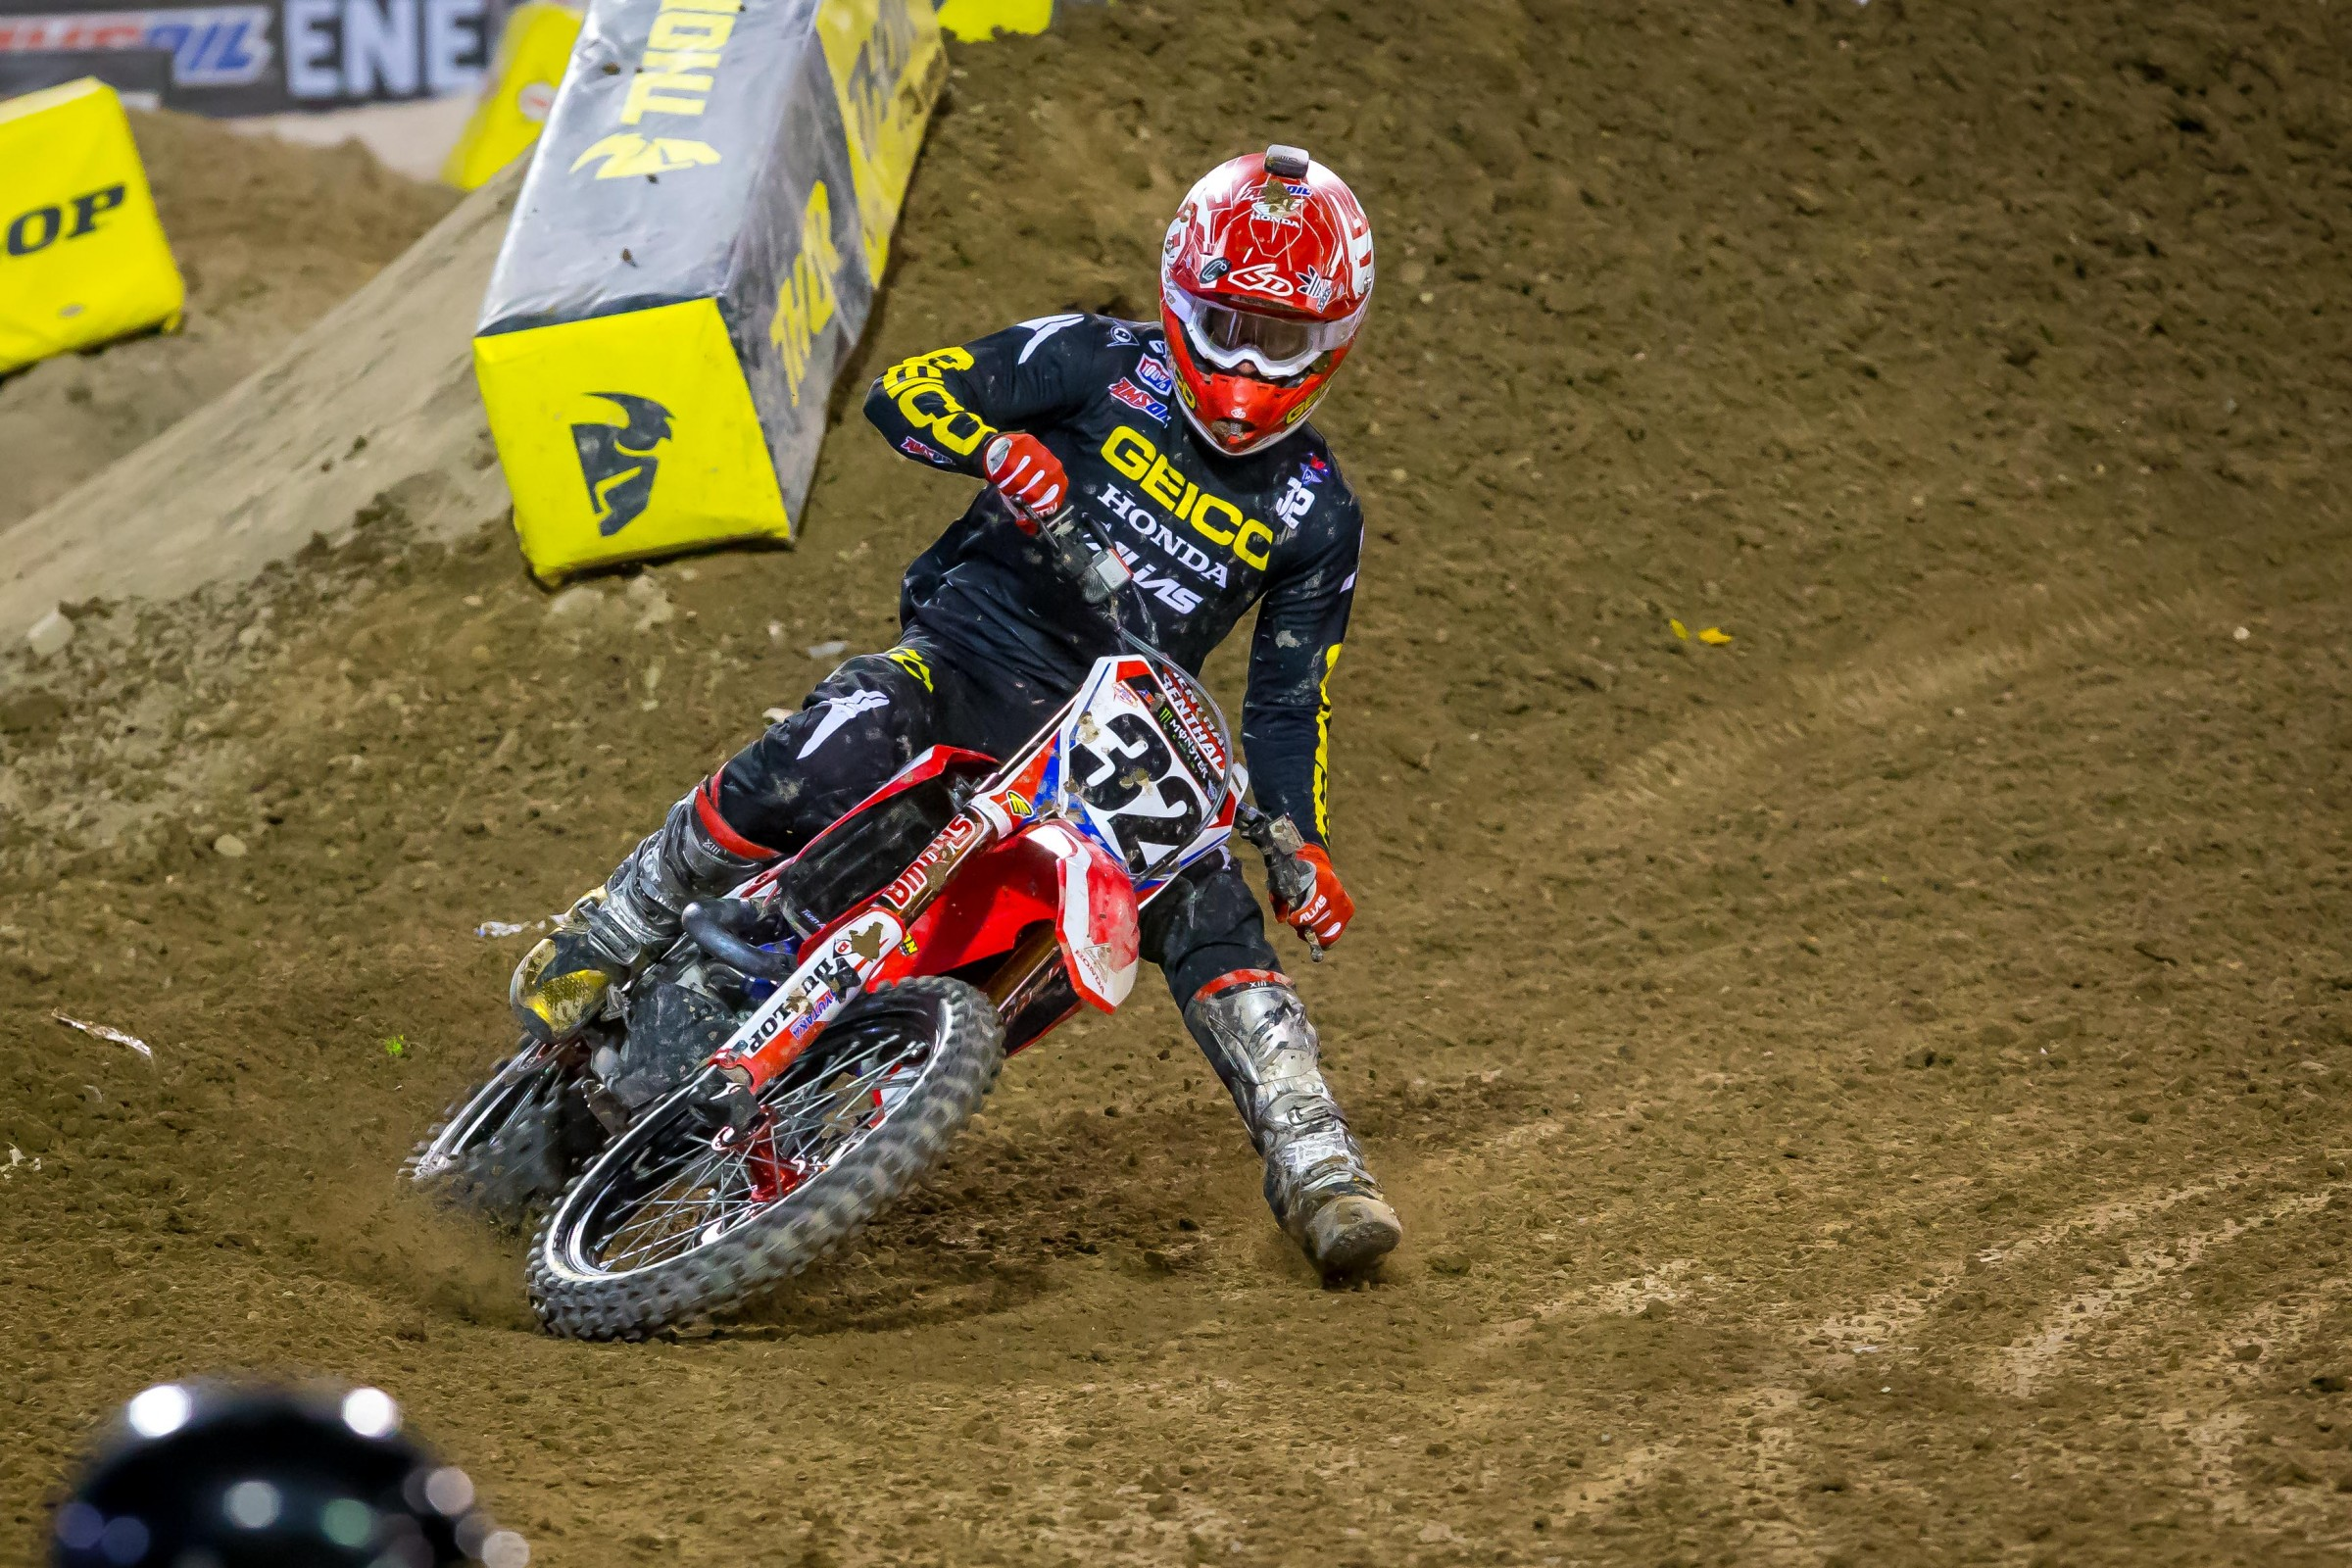 Craig will move up to the 450 Class with Honda HRC.